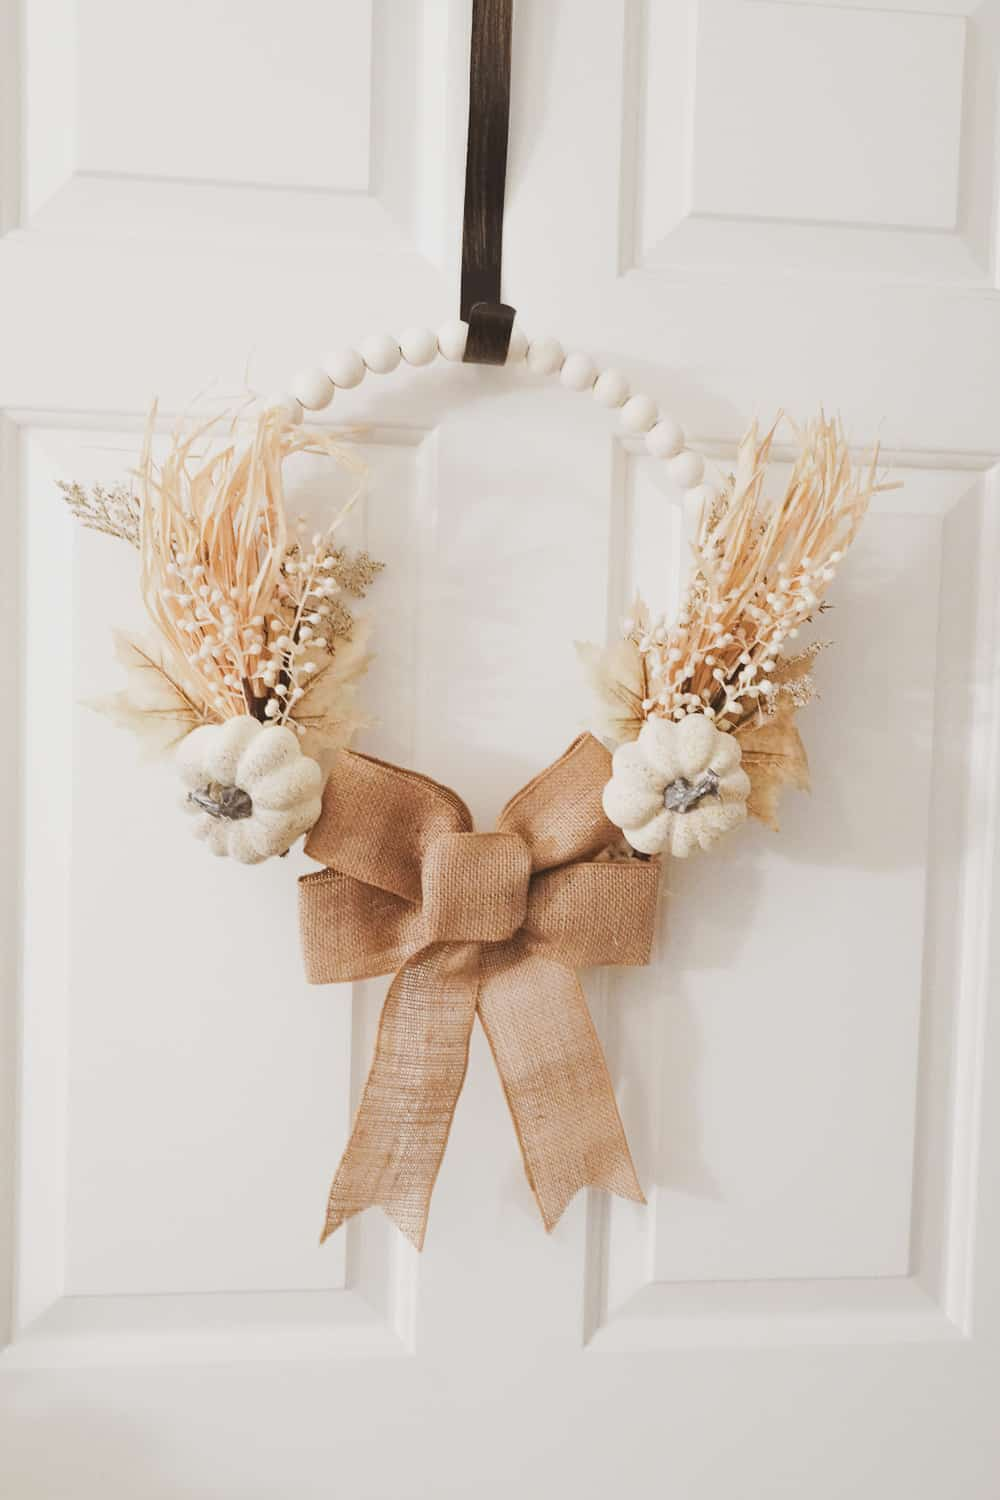 wood bead fall wreath that has a burlap bow on bottom with two neutral fall picks on the side